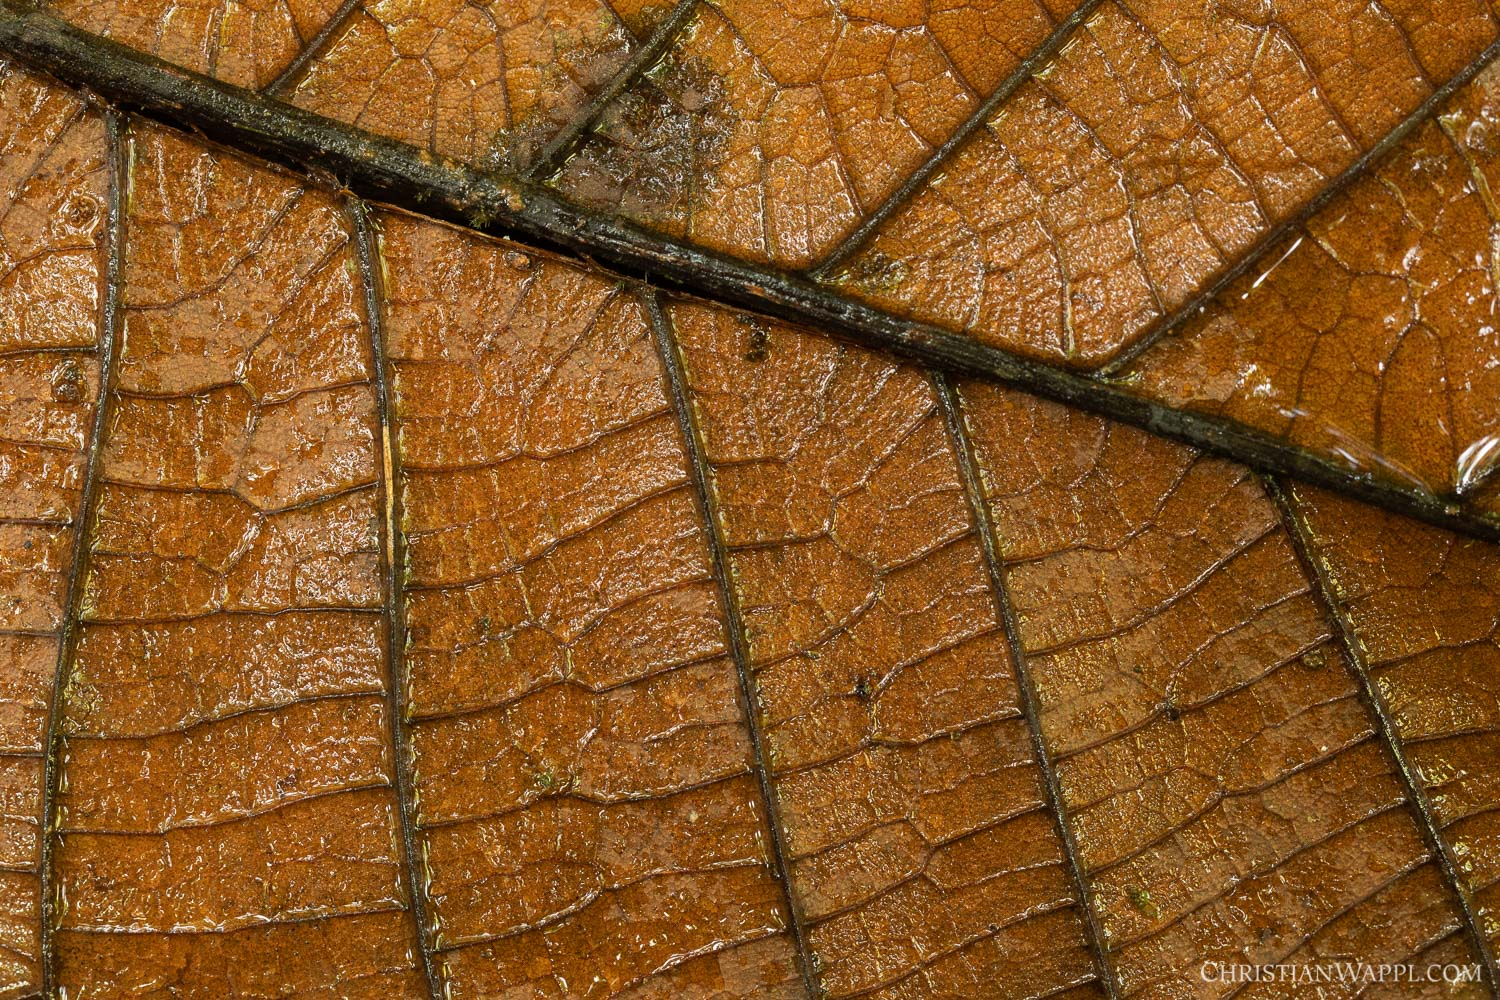 Detail of a dead leaf